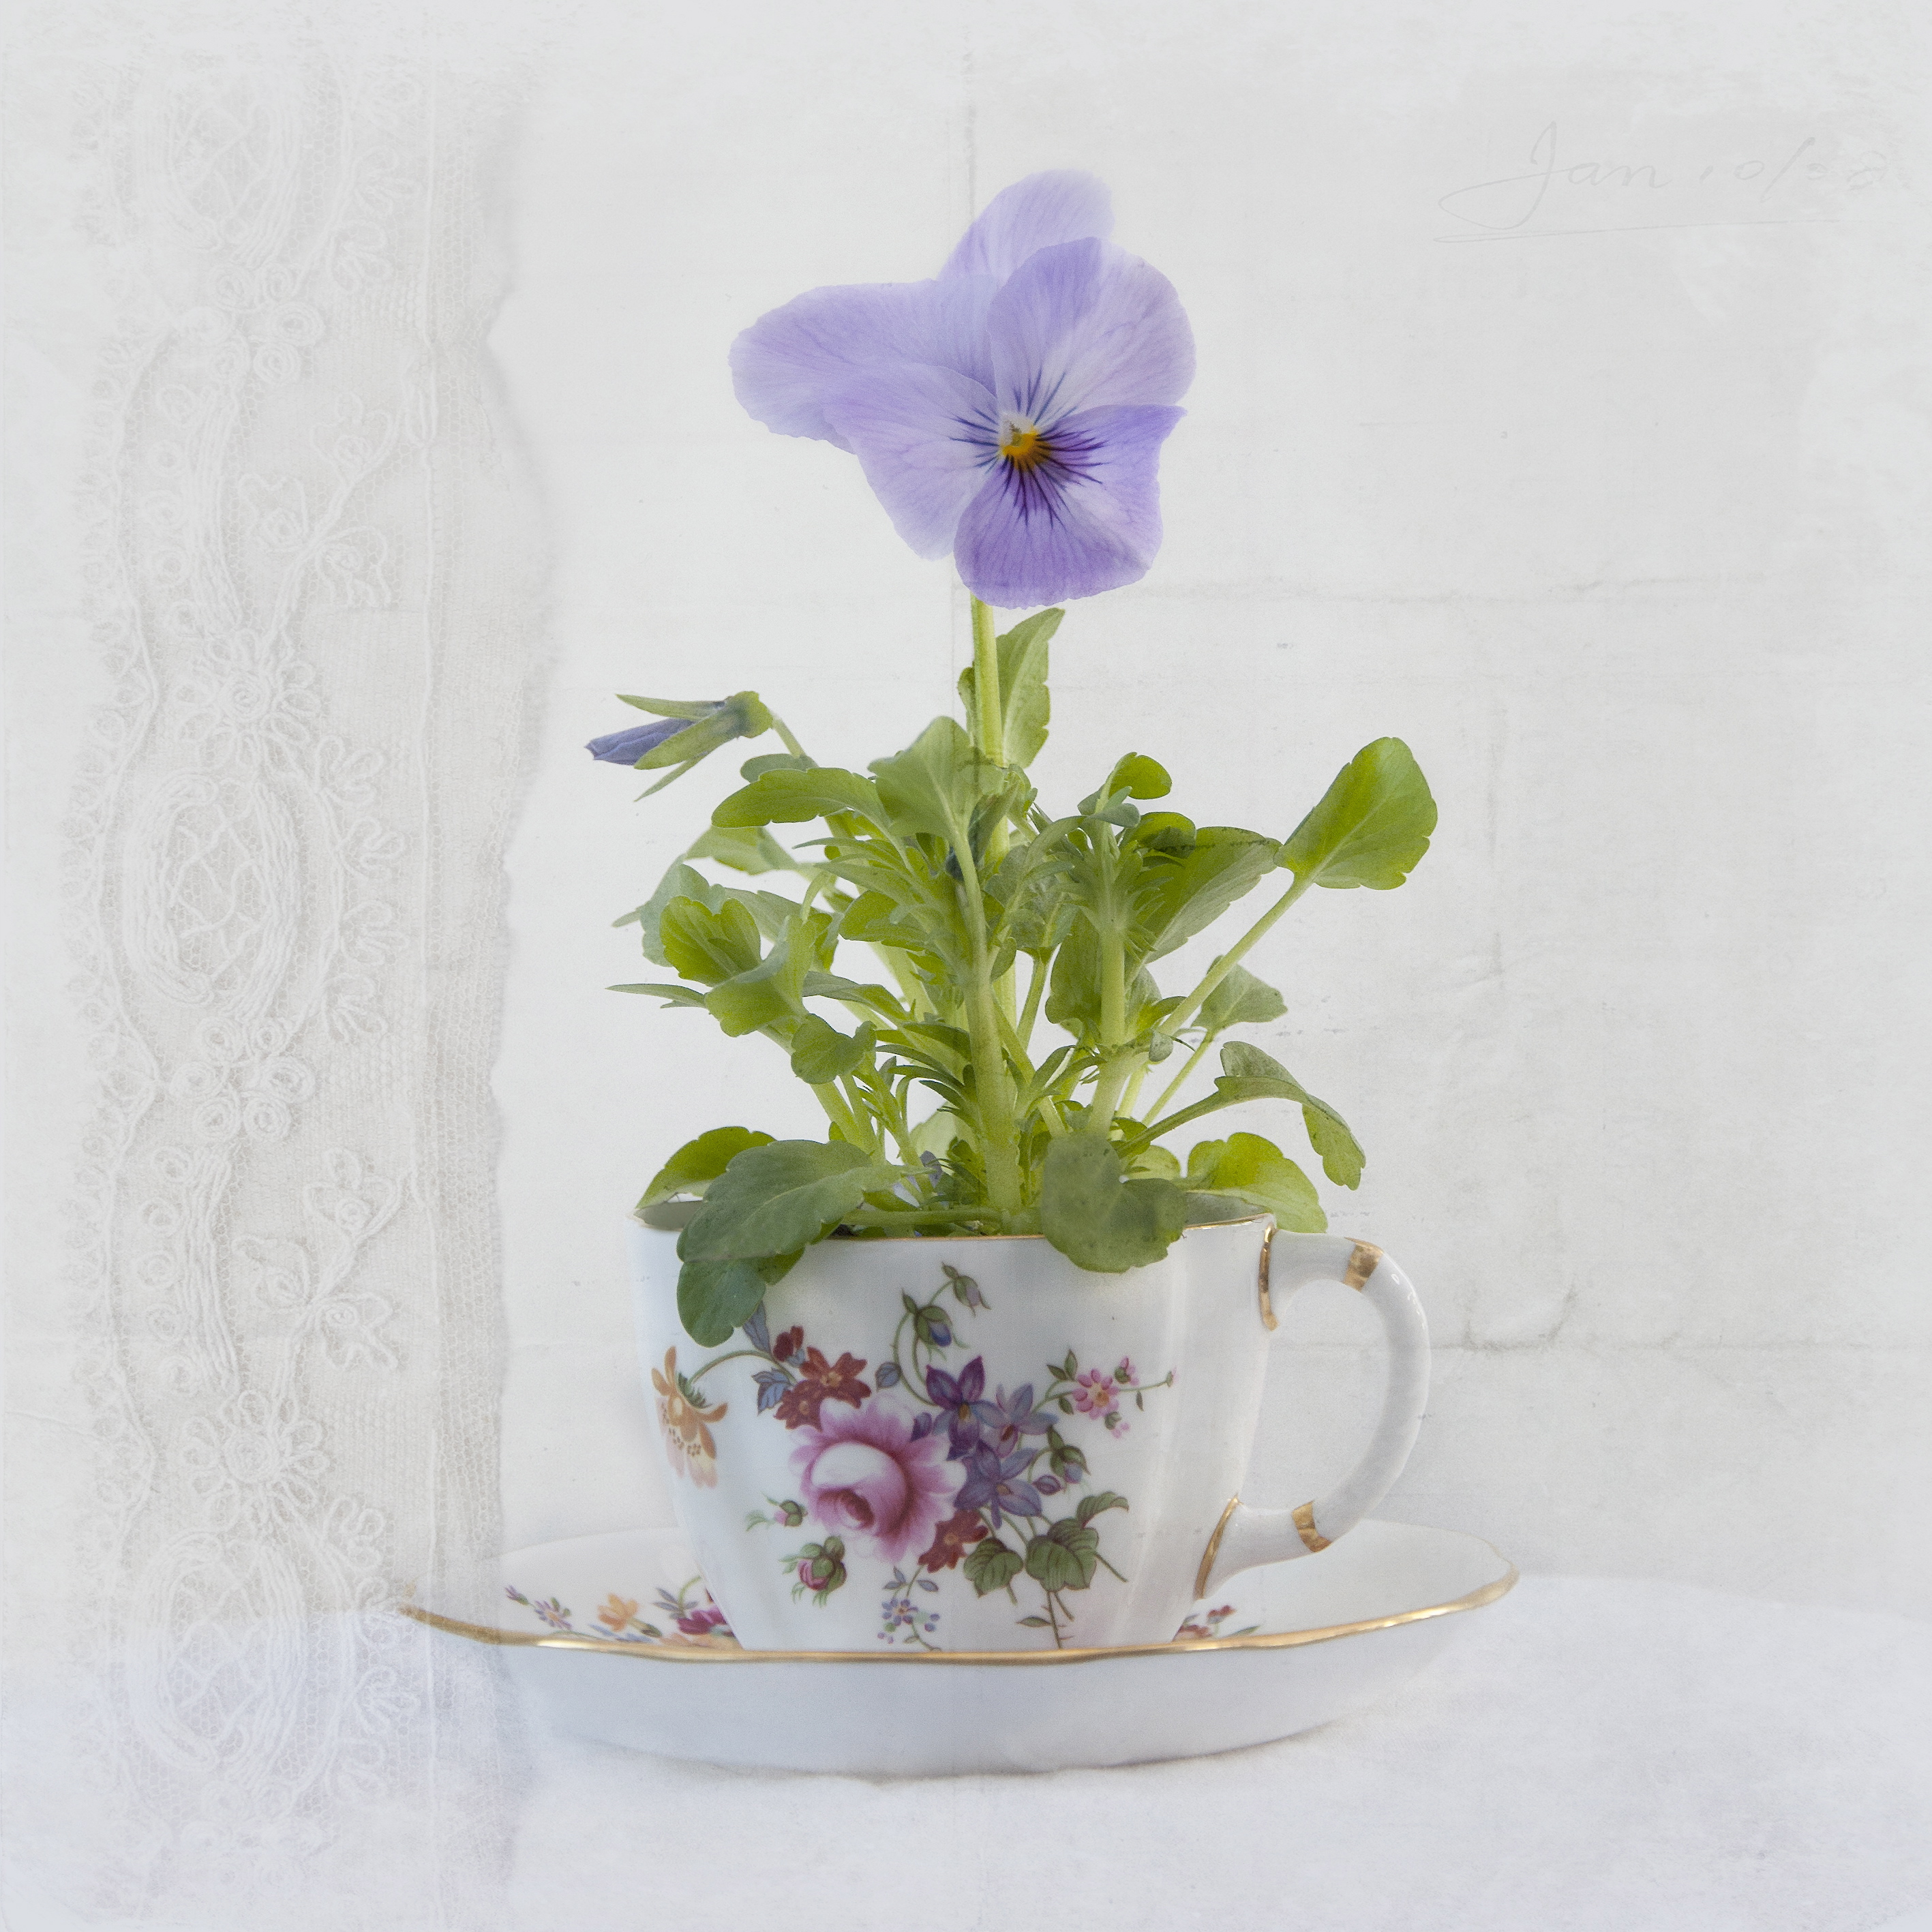 Purple Pansy in Victorias teacup